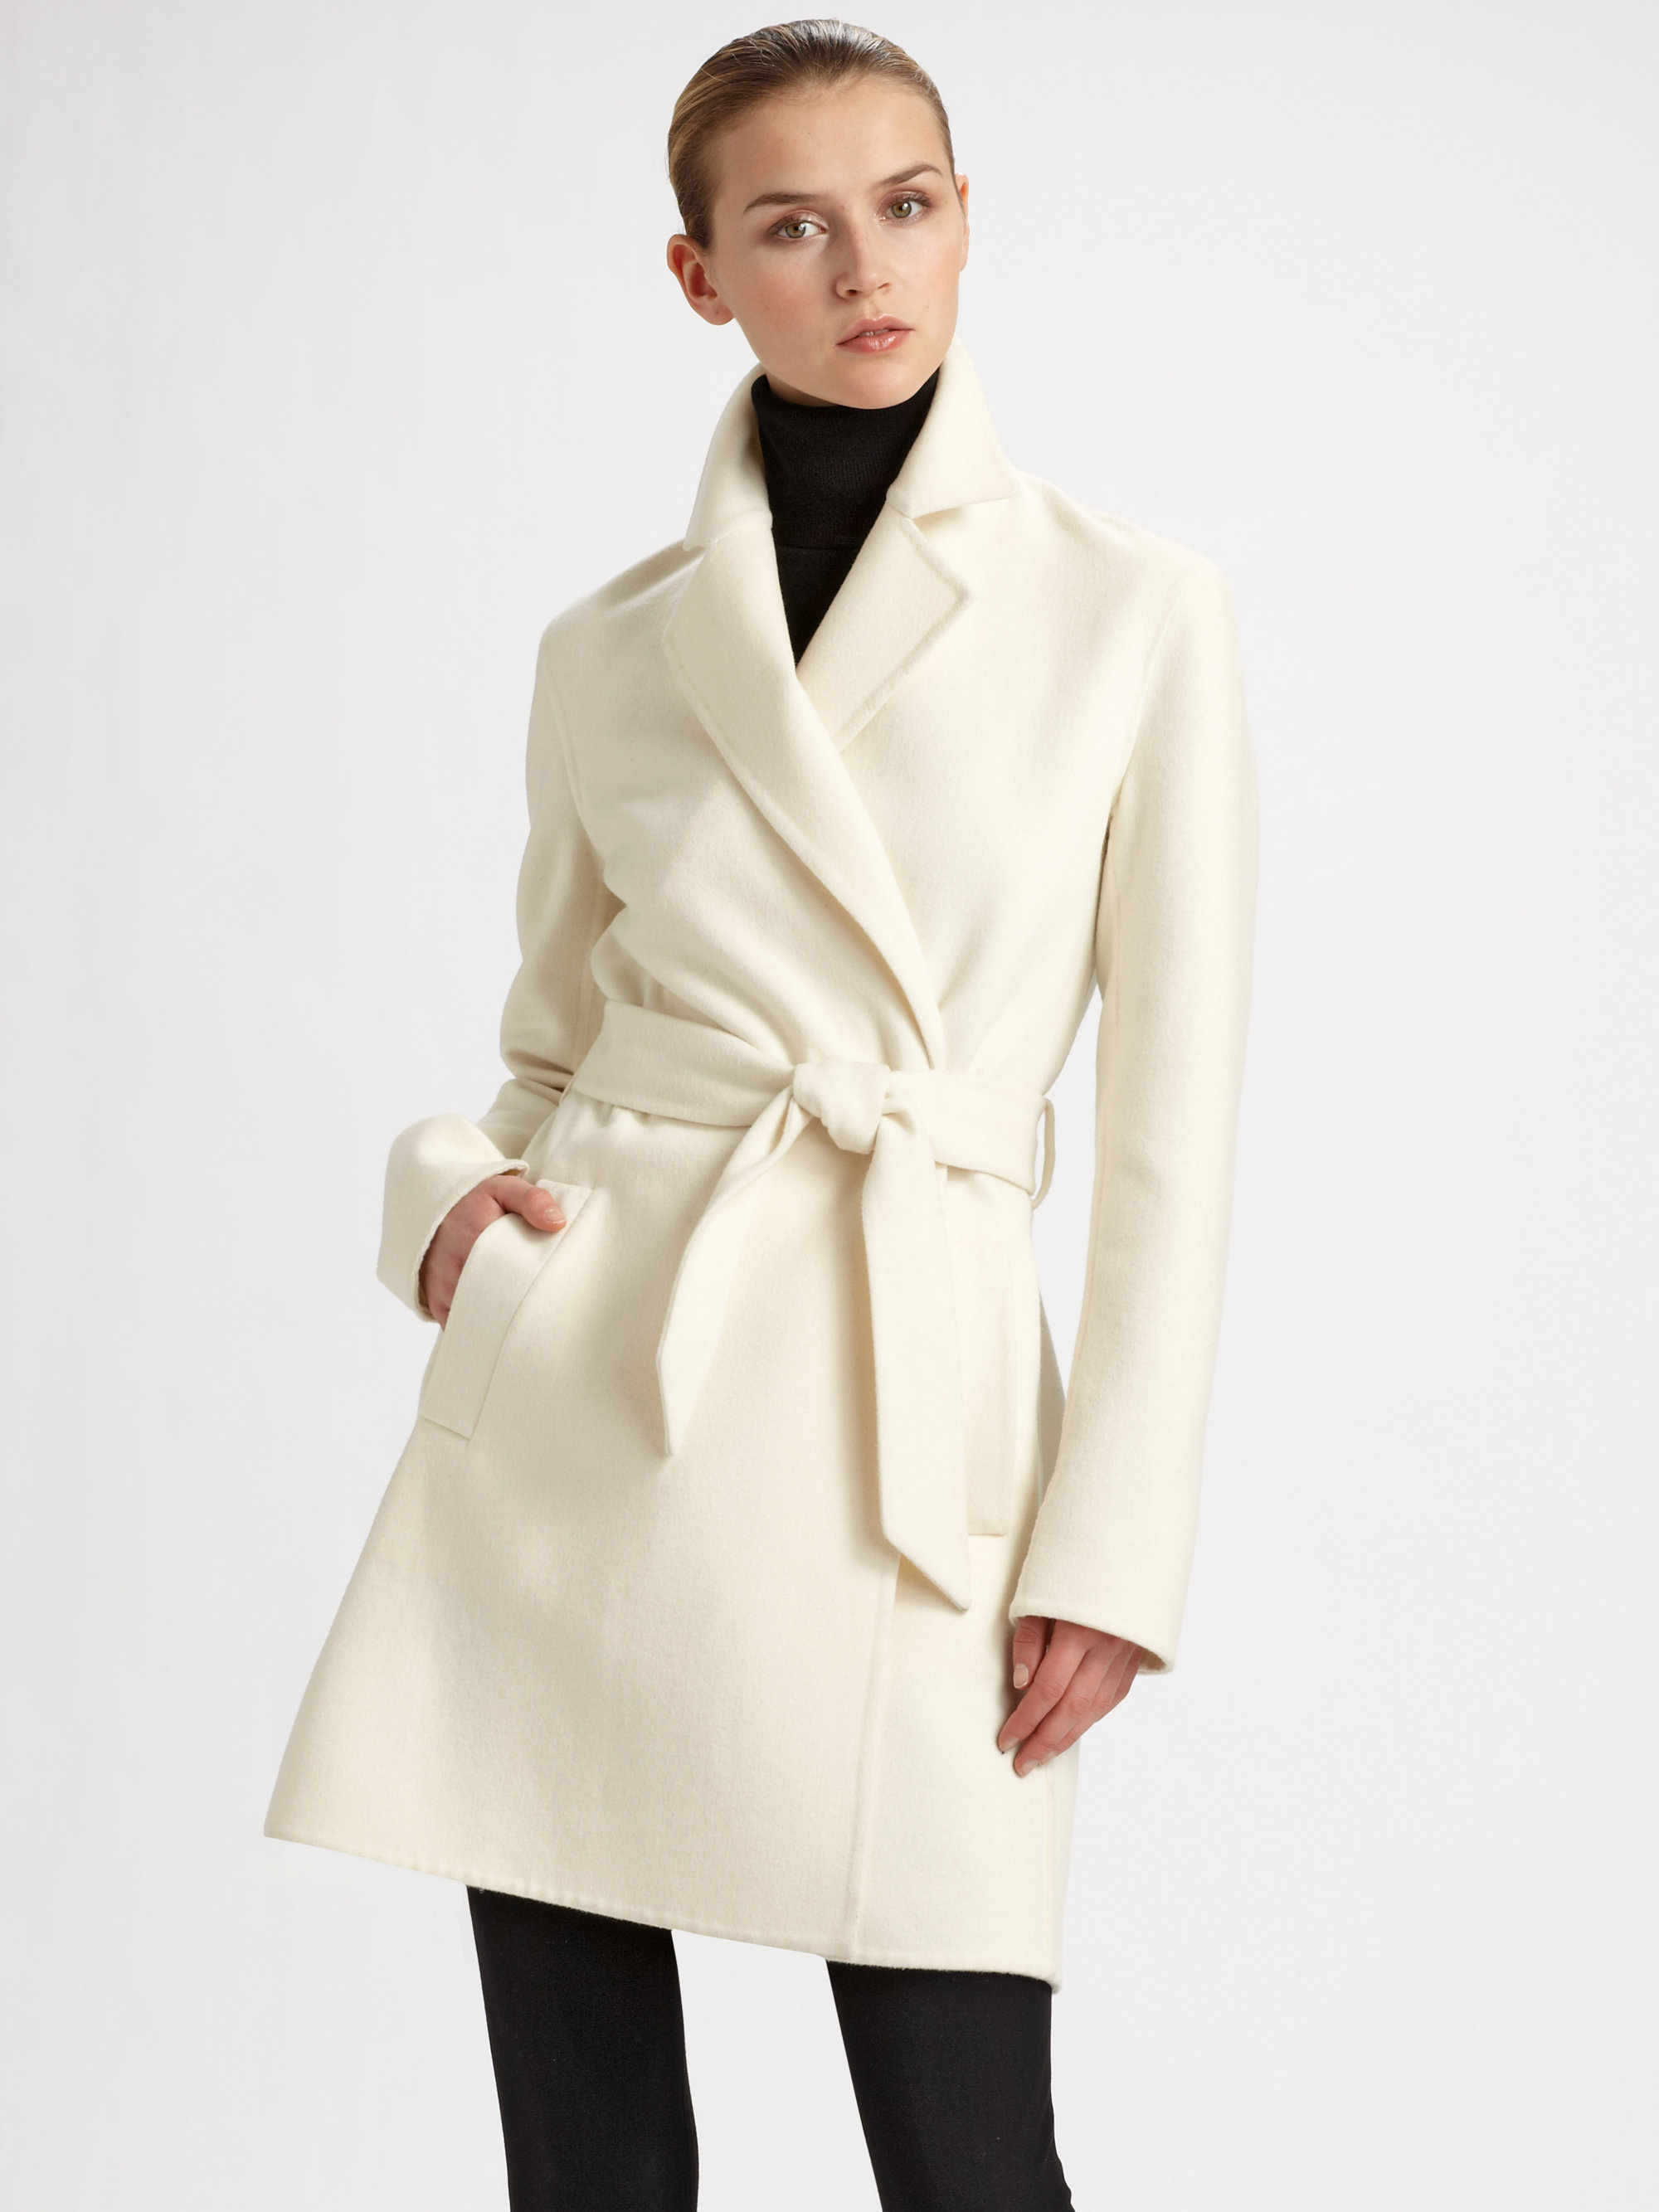 Ralph lauren black label Heatherly Doubleface Wrap Coat in White